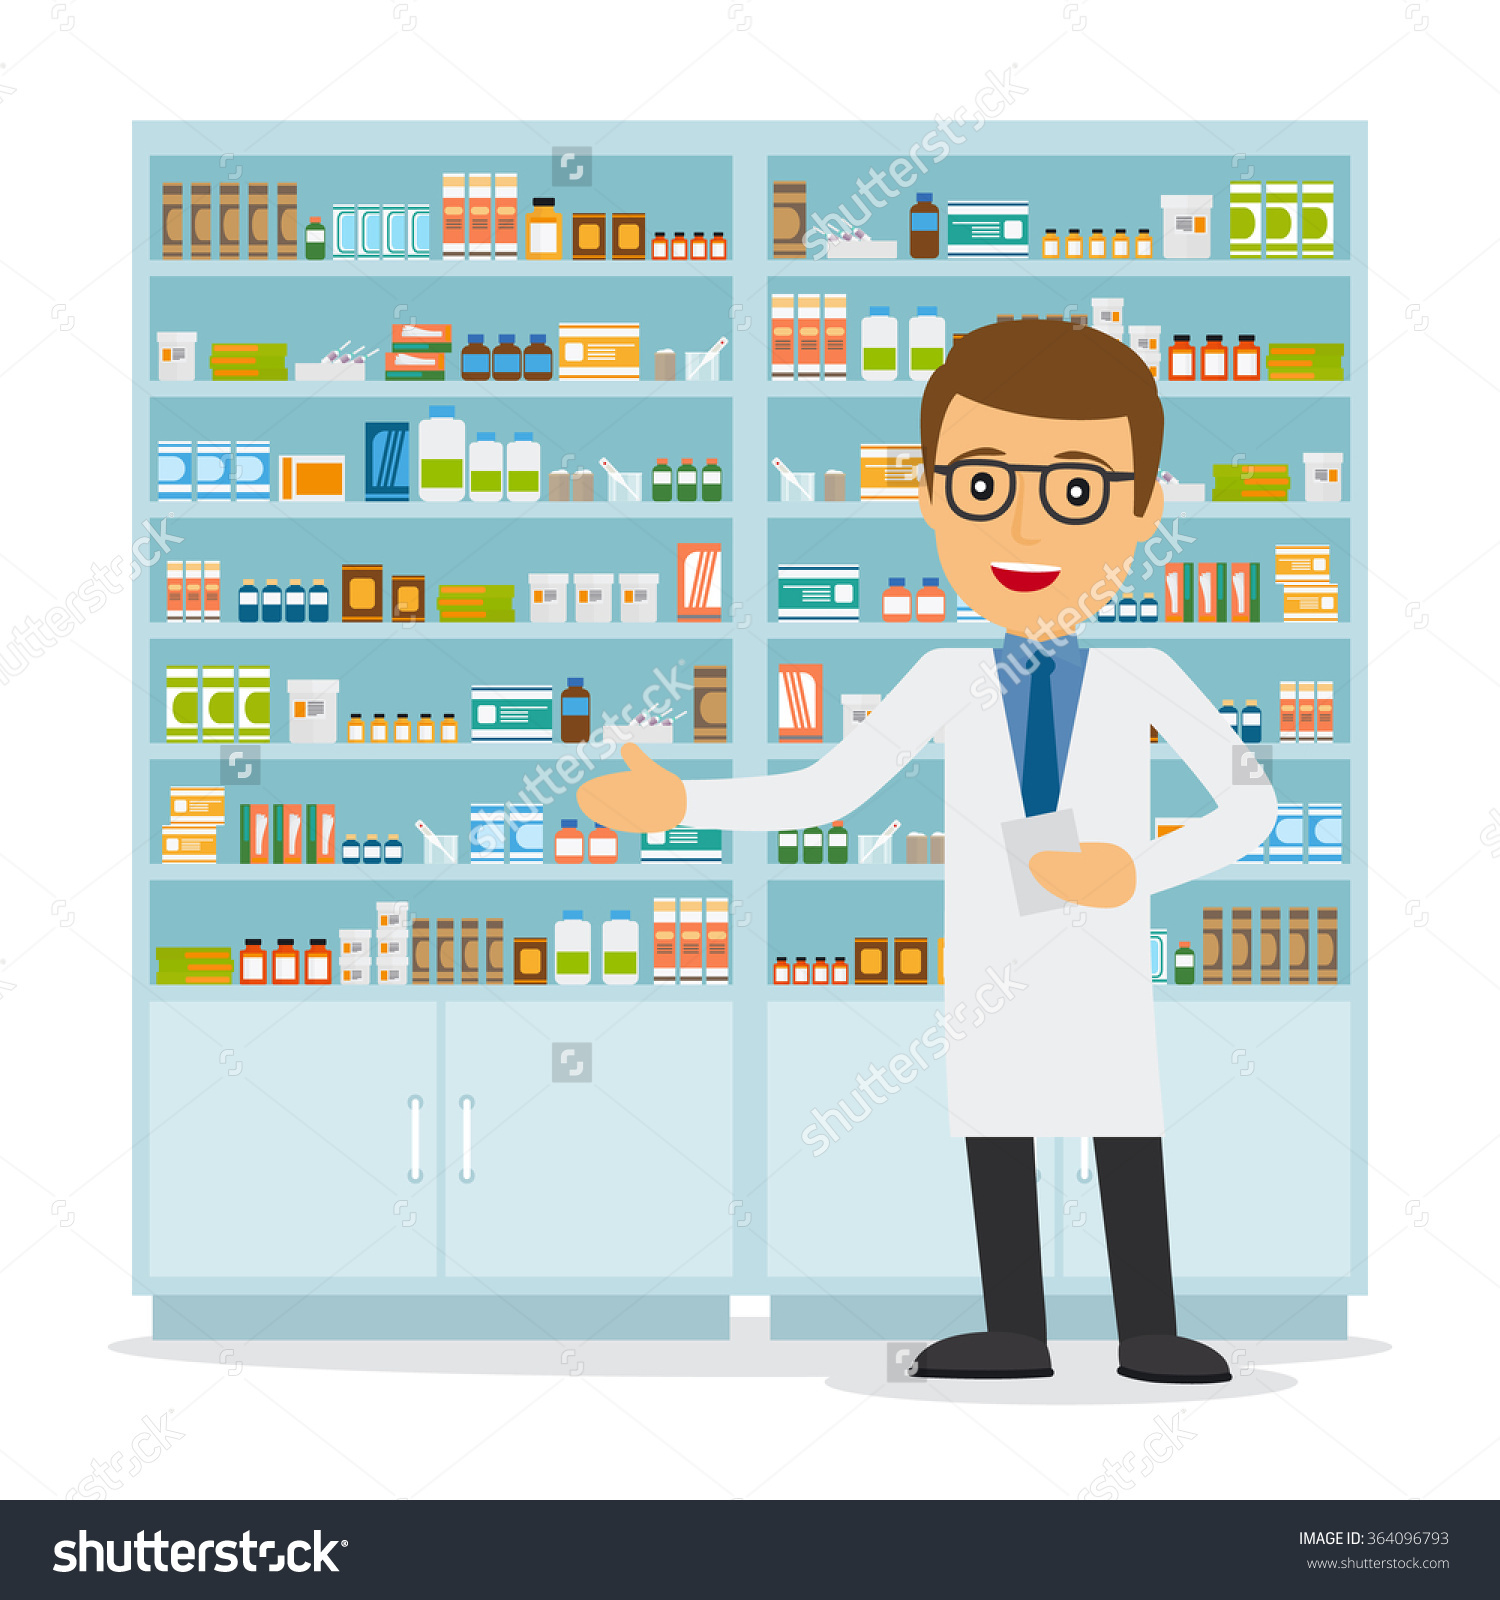 Male pharmacist clipart.